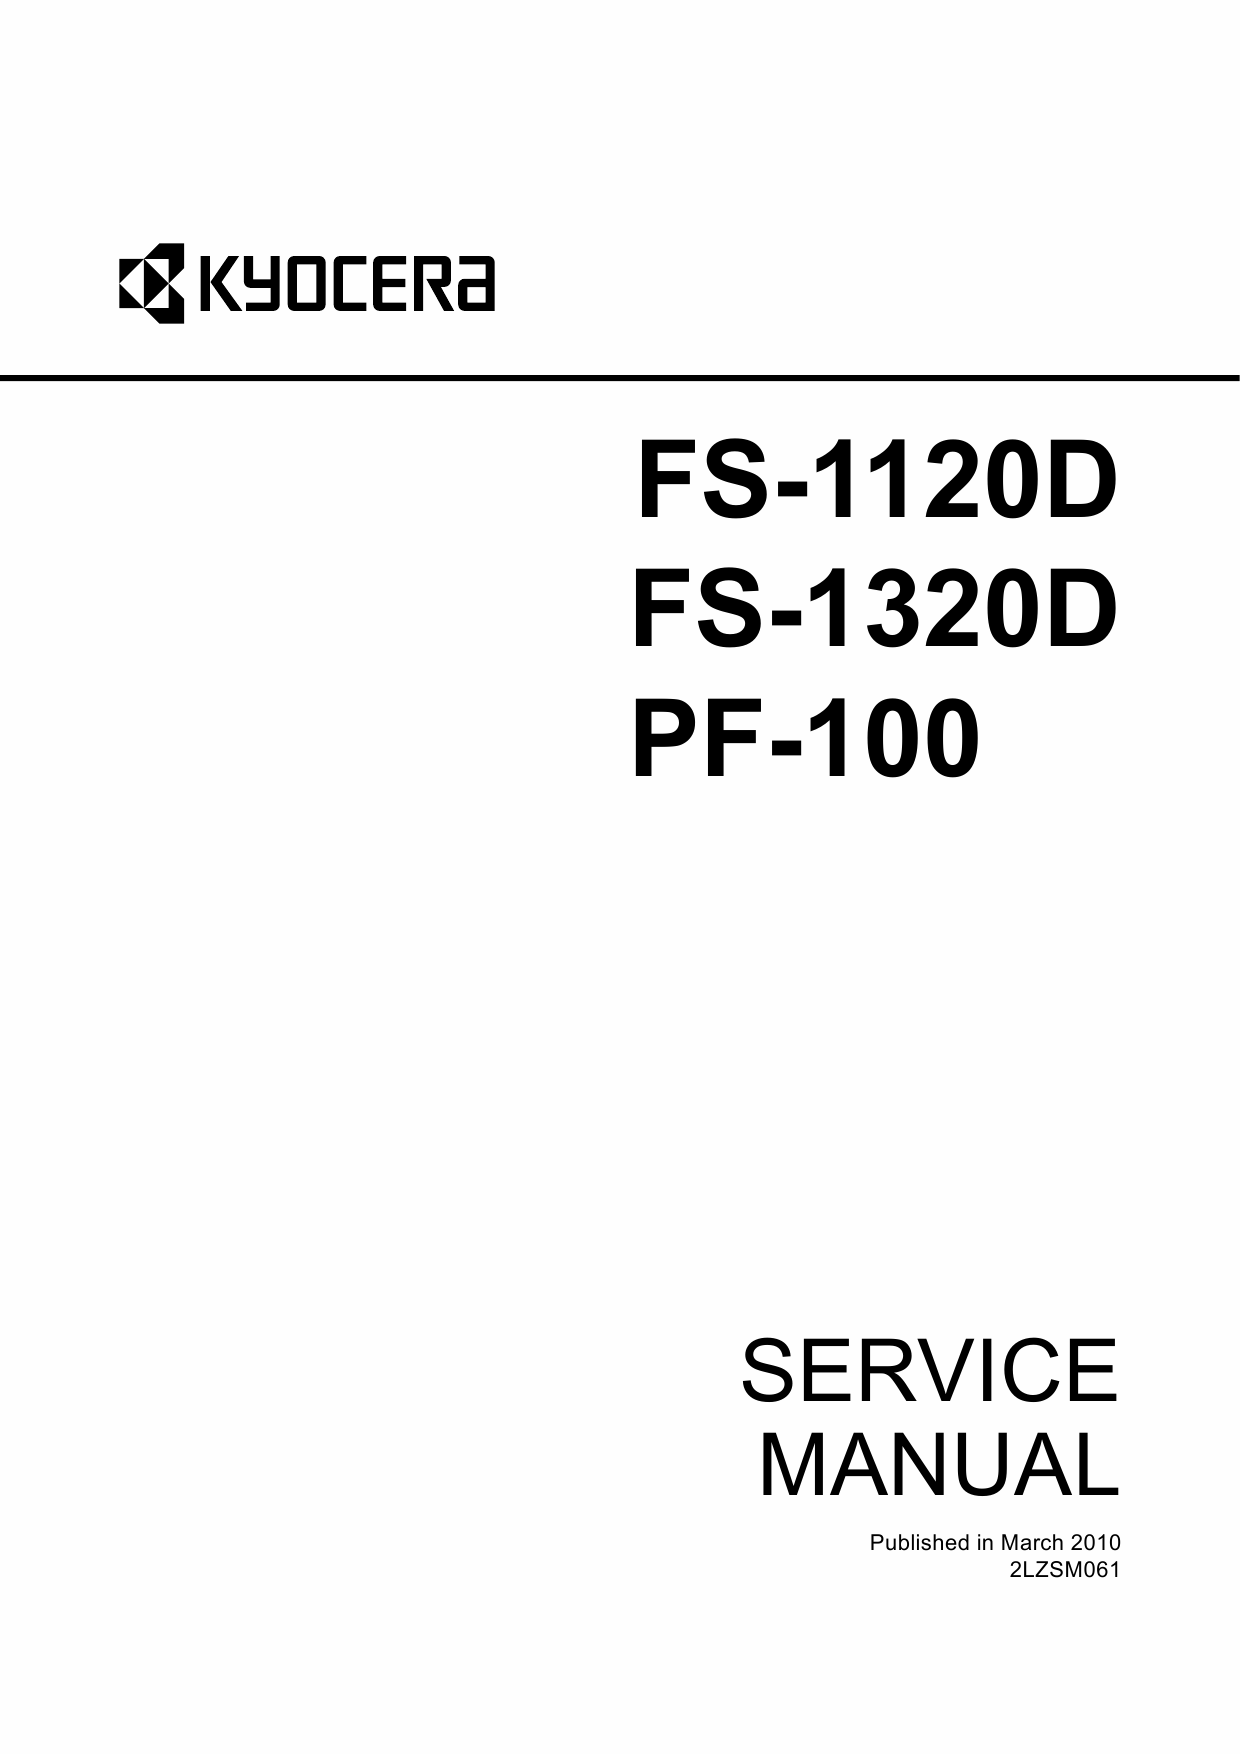 KYOCERA LaserPrinter FS-1120D FS-1320D PF-100 Parts and